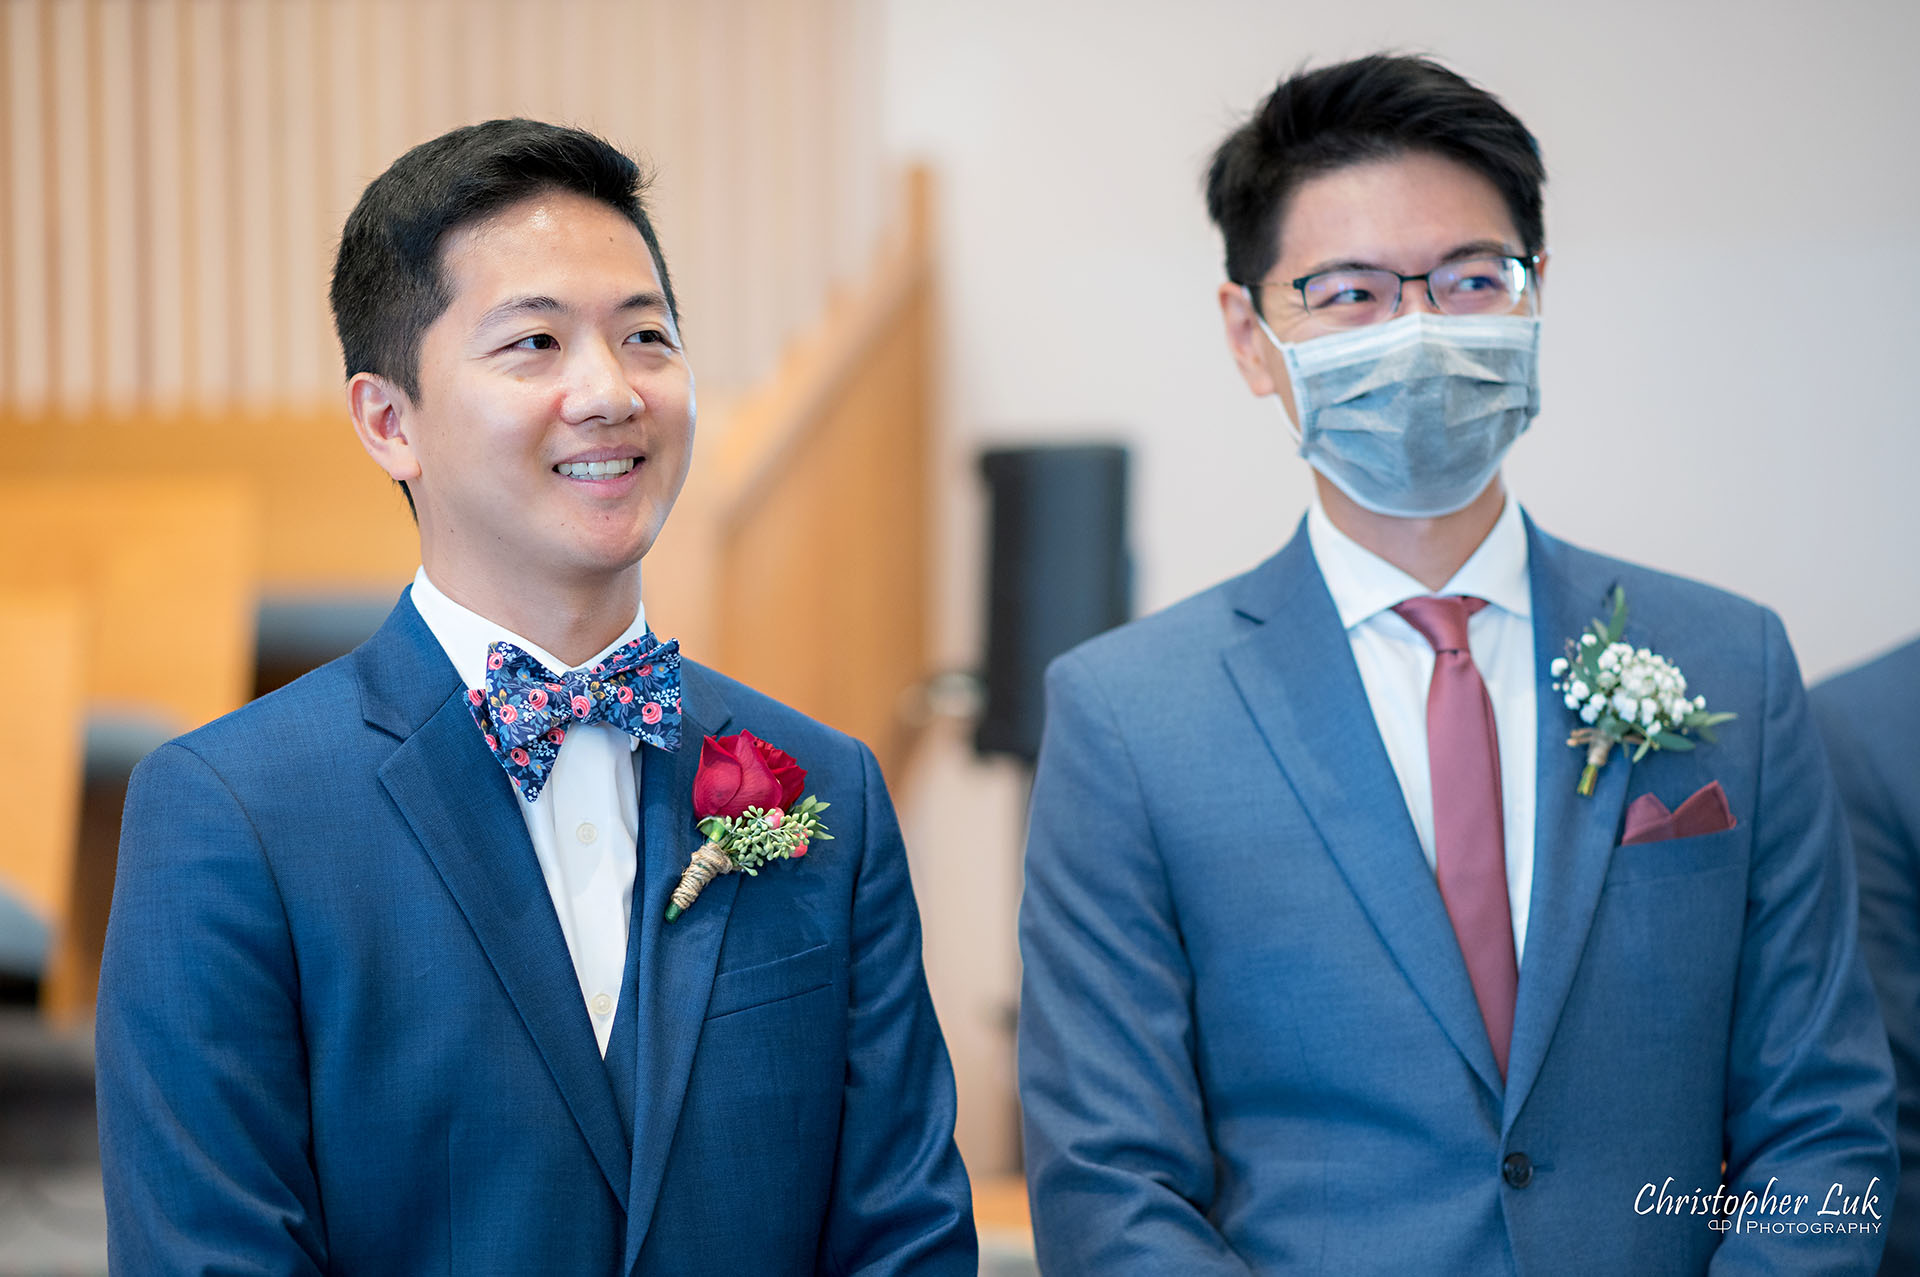 Christopher Luk Toronto Wedding Photographer Bridle Trail Baptist Church Unionville Main Street Crystal Fountain Event Venue Ceremony Location Interior Groom Best Man Bride Walking Down the Aisle Reaction Smile Natural Photojournalistic Candid